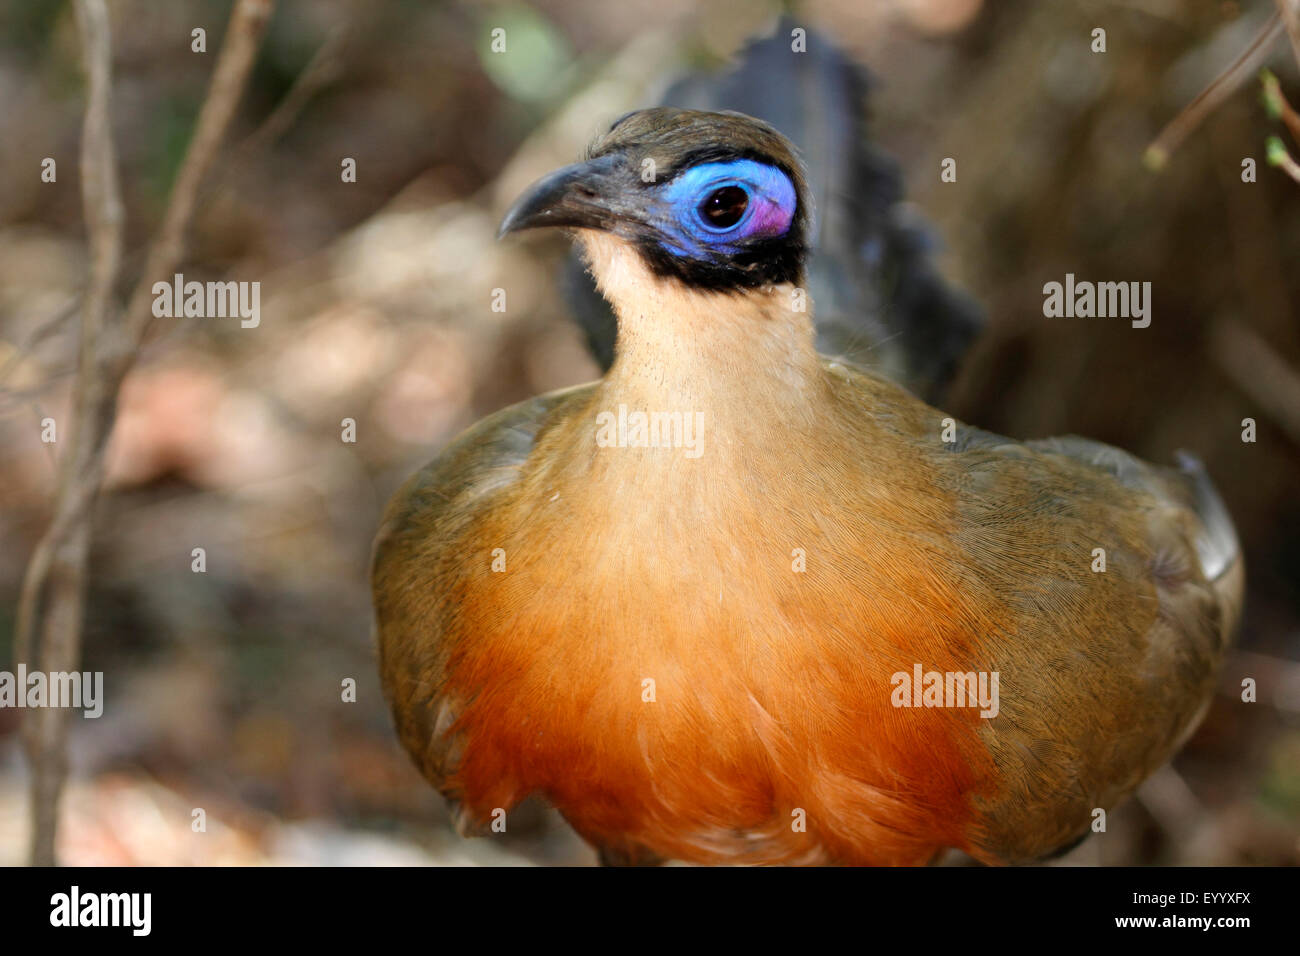 Giant Madagascar coucal, Giant coua (Coua gigas), portrait, Madagascar, Zombitse-Vohibasia National Park - Stock Image